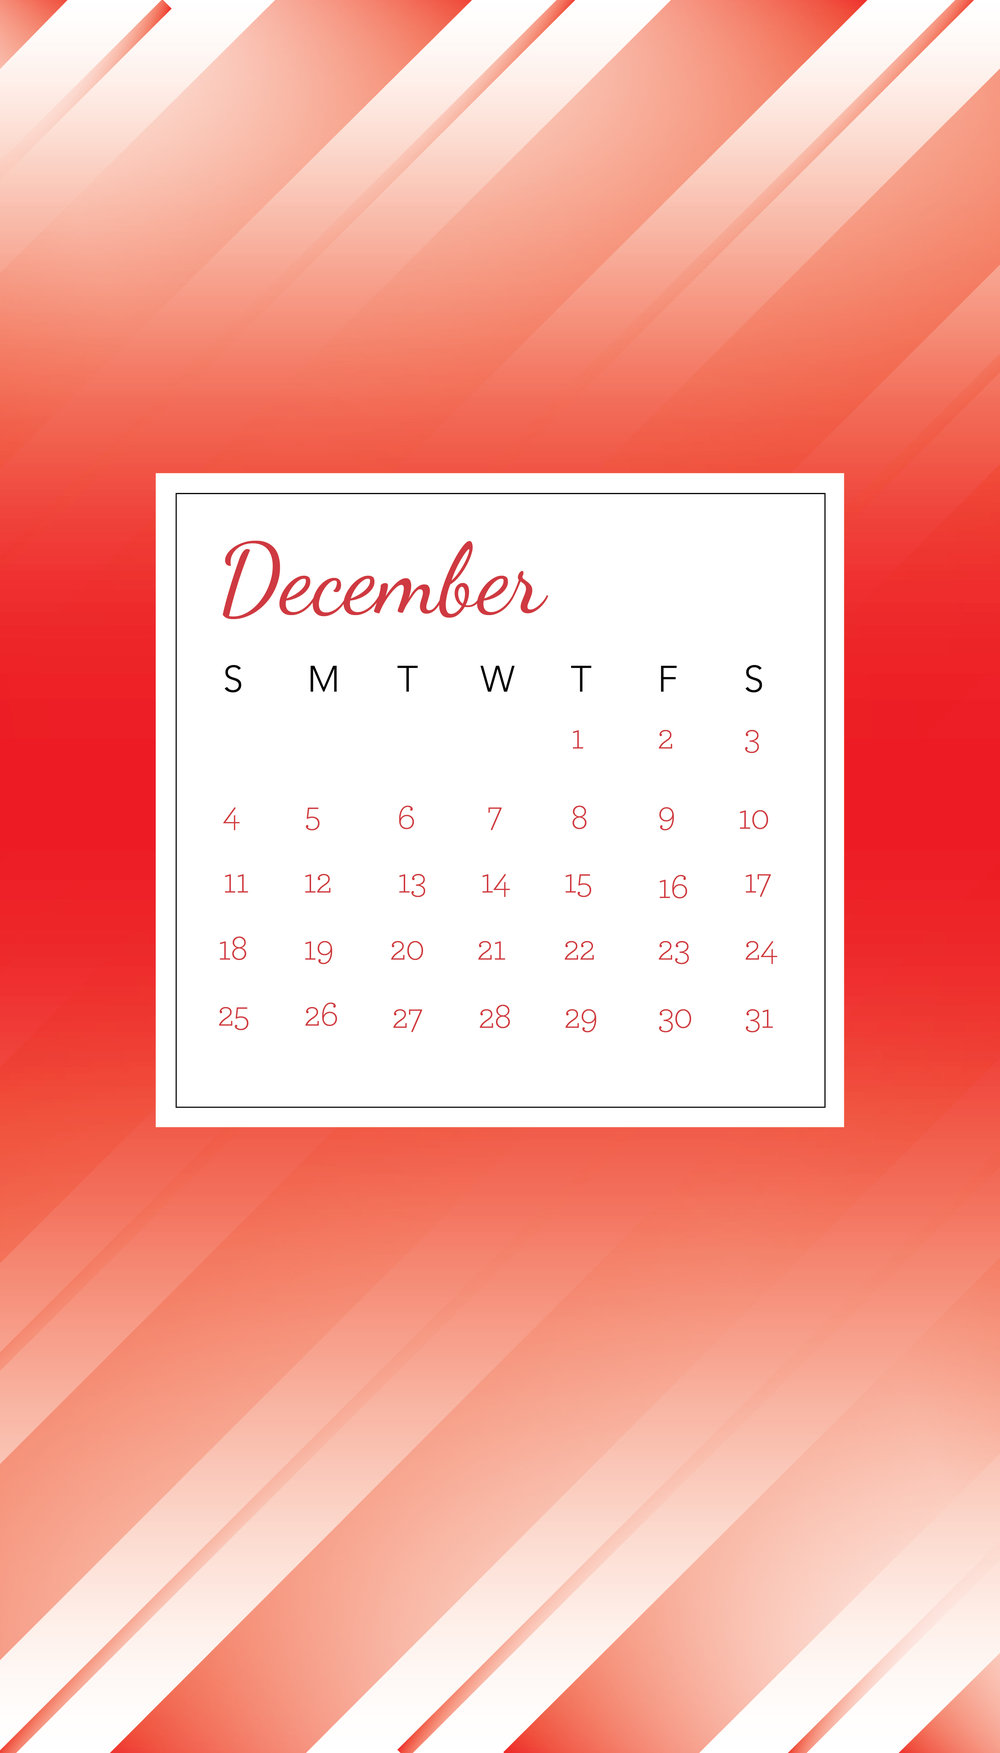 DECEMBER 2016 PHONE WALLPAPER DOWNLOAD